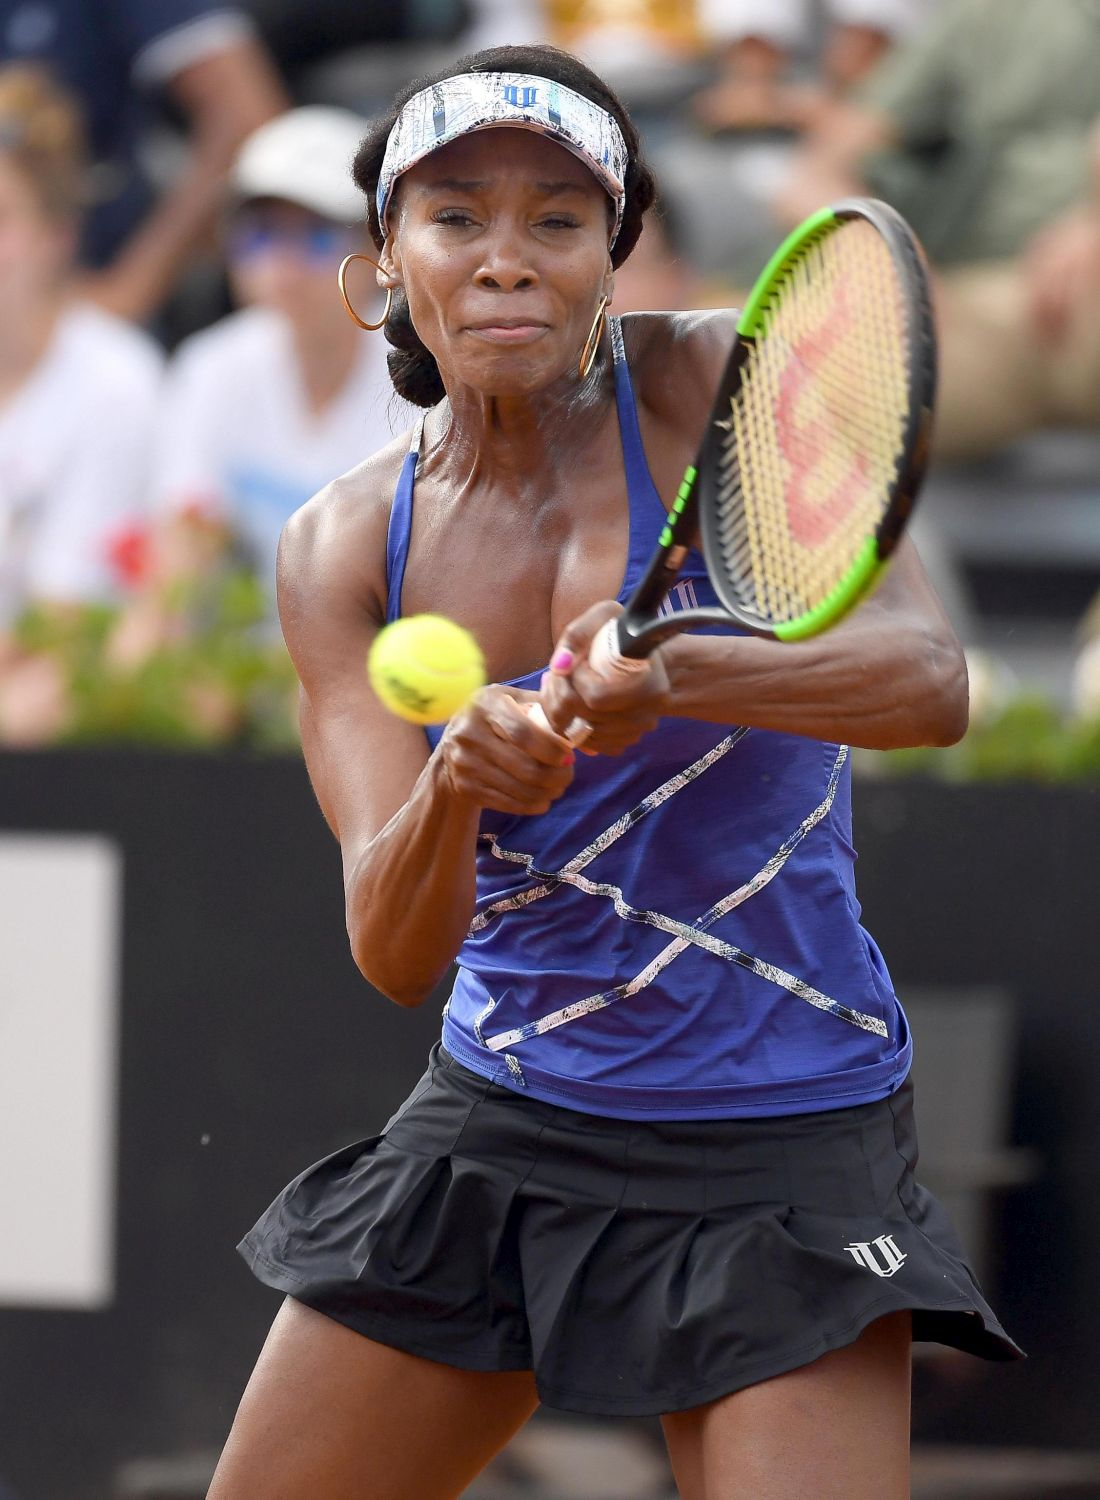 Roma, Venus Williams sul velluto